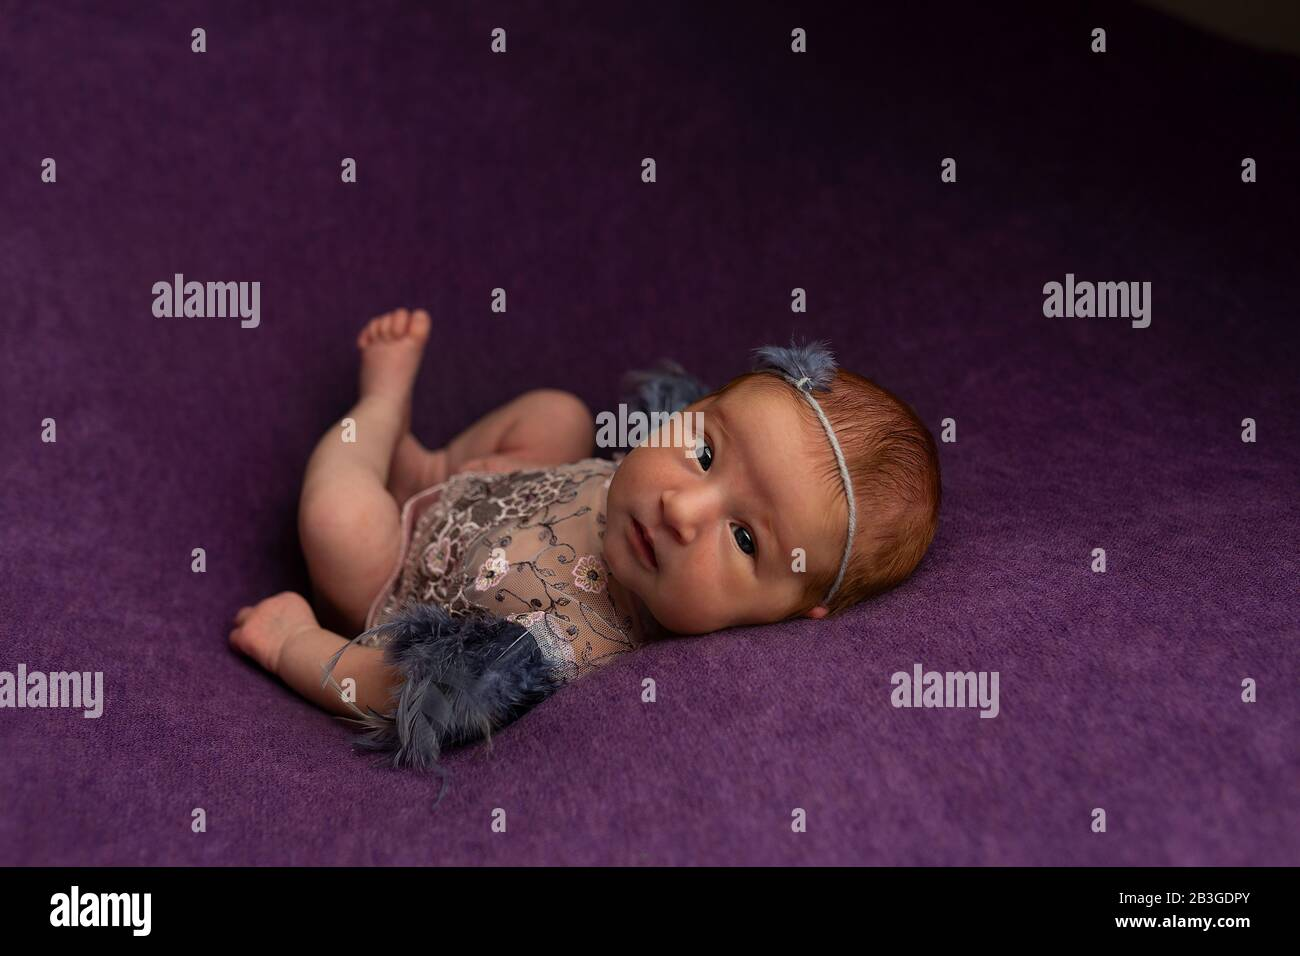 Pretty Newborn Baby Girl In Pink Dress On Textile Background With A Headband Newborn Props And Photo Ideas For The First Photo Session Stock Photo Alamy